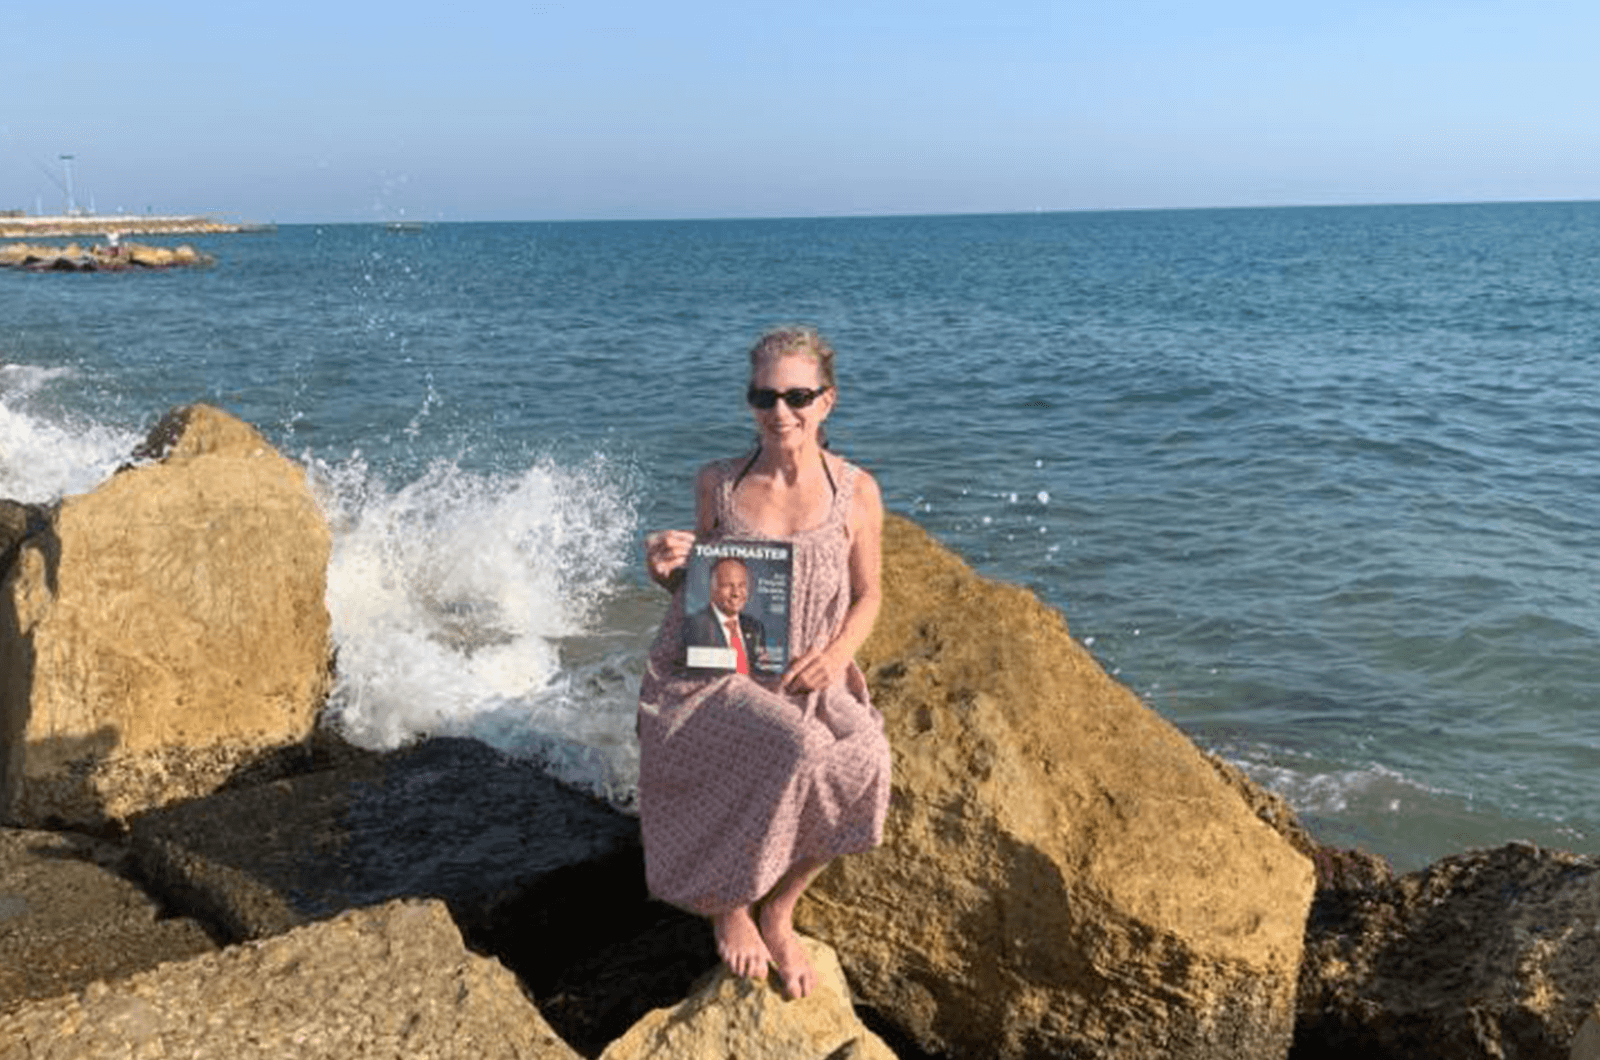 Caryl Lattof of West Roxbury, Massachusetts, sits by the Mediterranean Sea in Anzio, Italy.